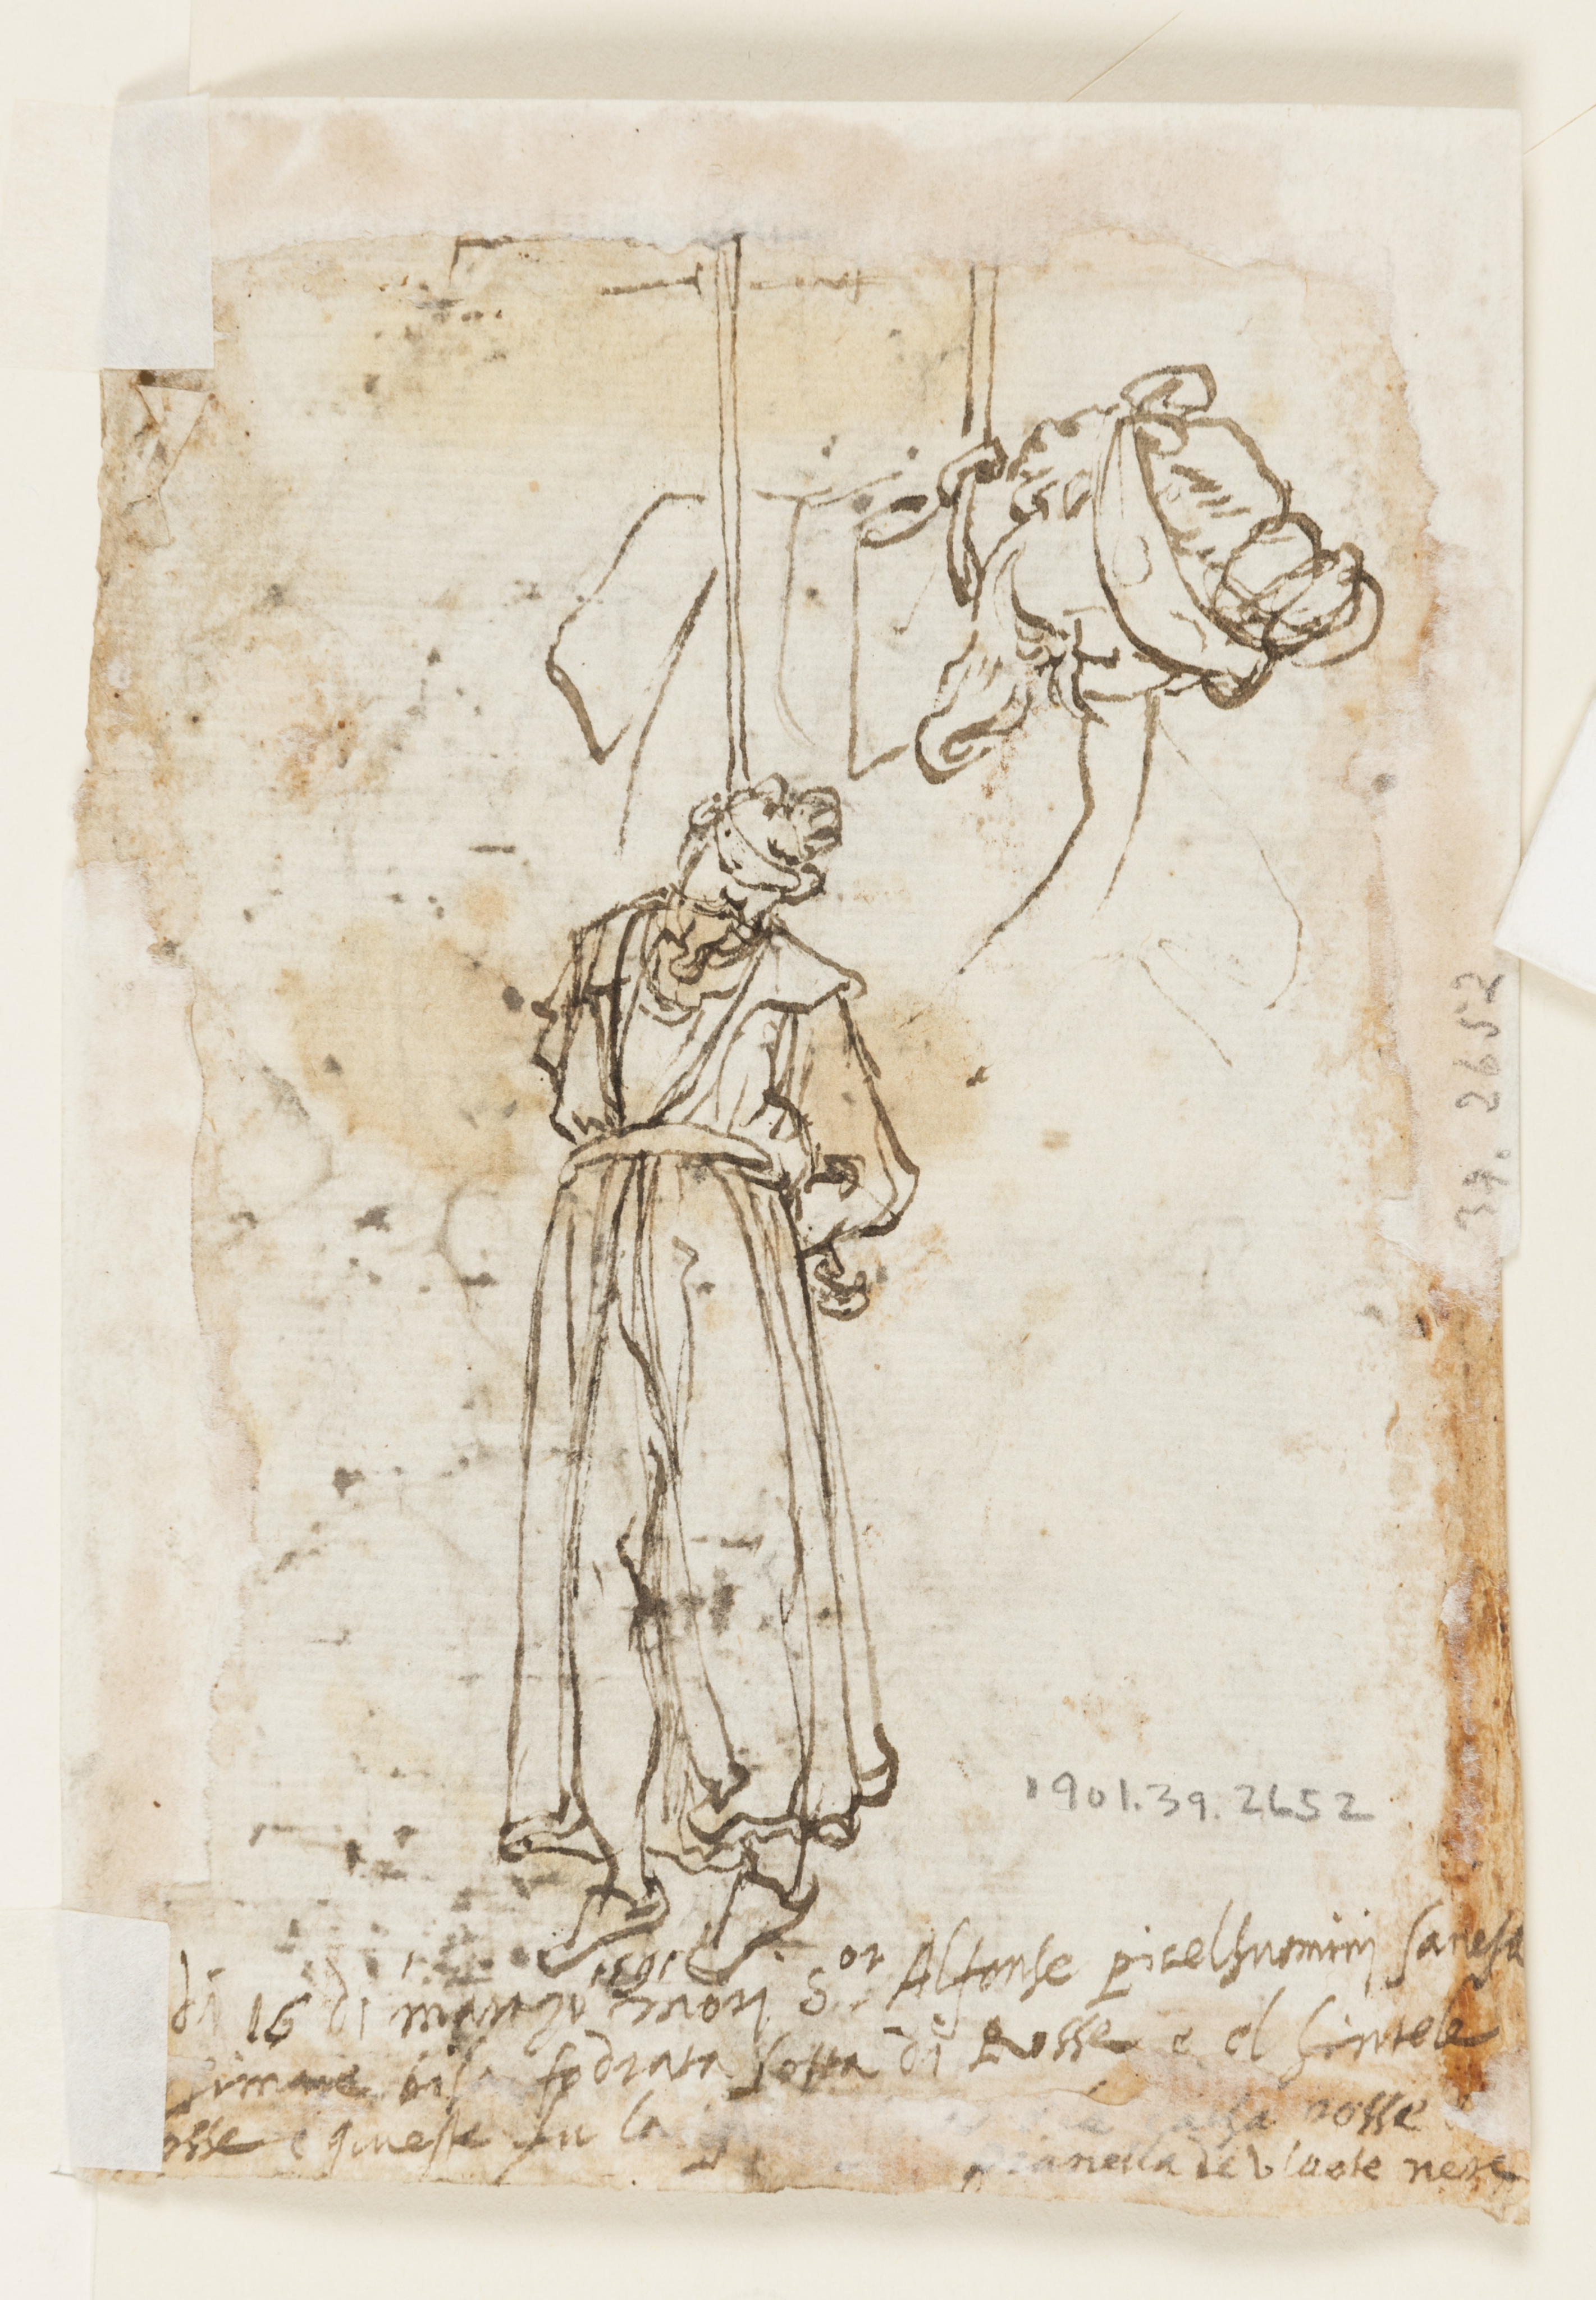 FileDrawing Page Of A Sketchbook Beheading Of St John The